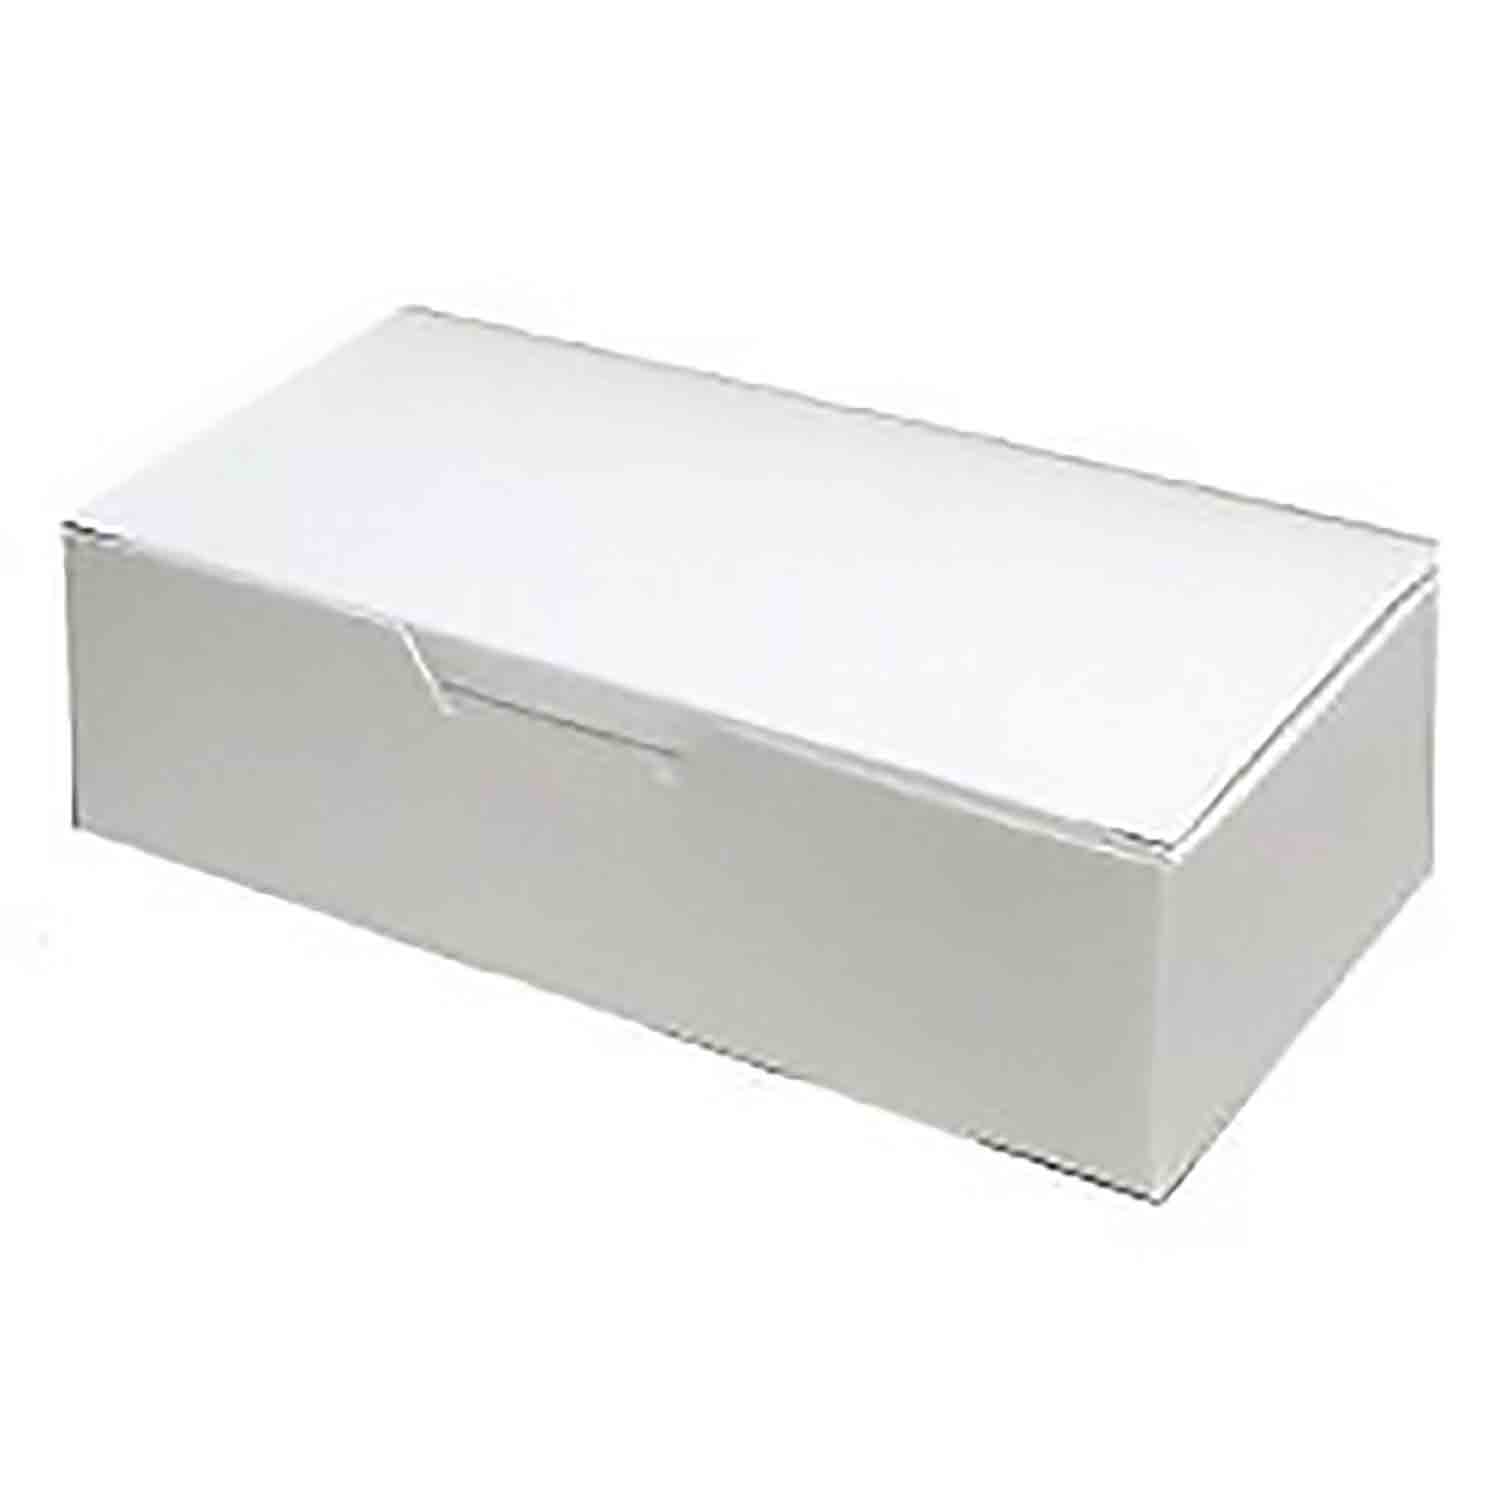 1 1/2 lb. White Candy Box